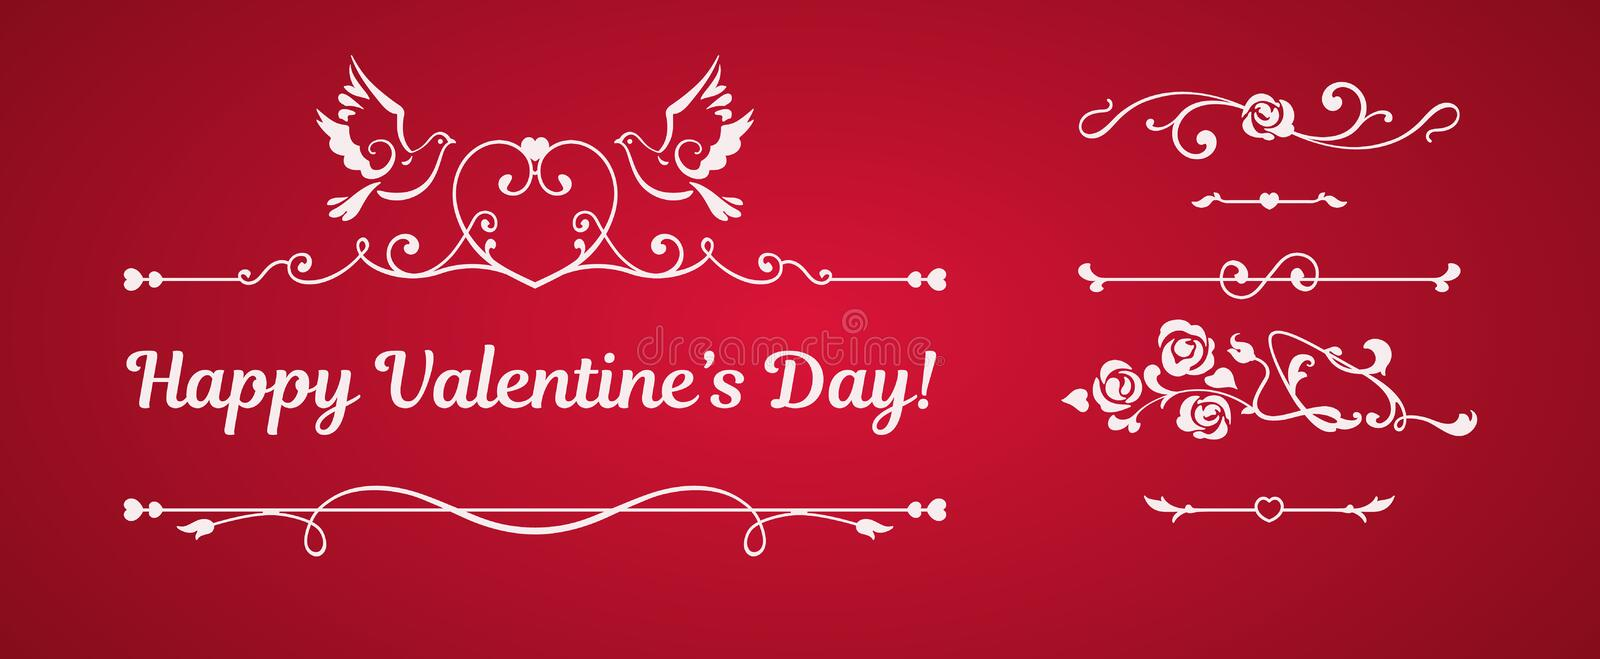 Calligraphic elements, doves, hearts on red background vector illustration